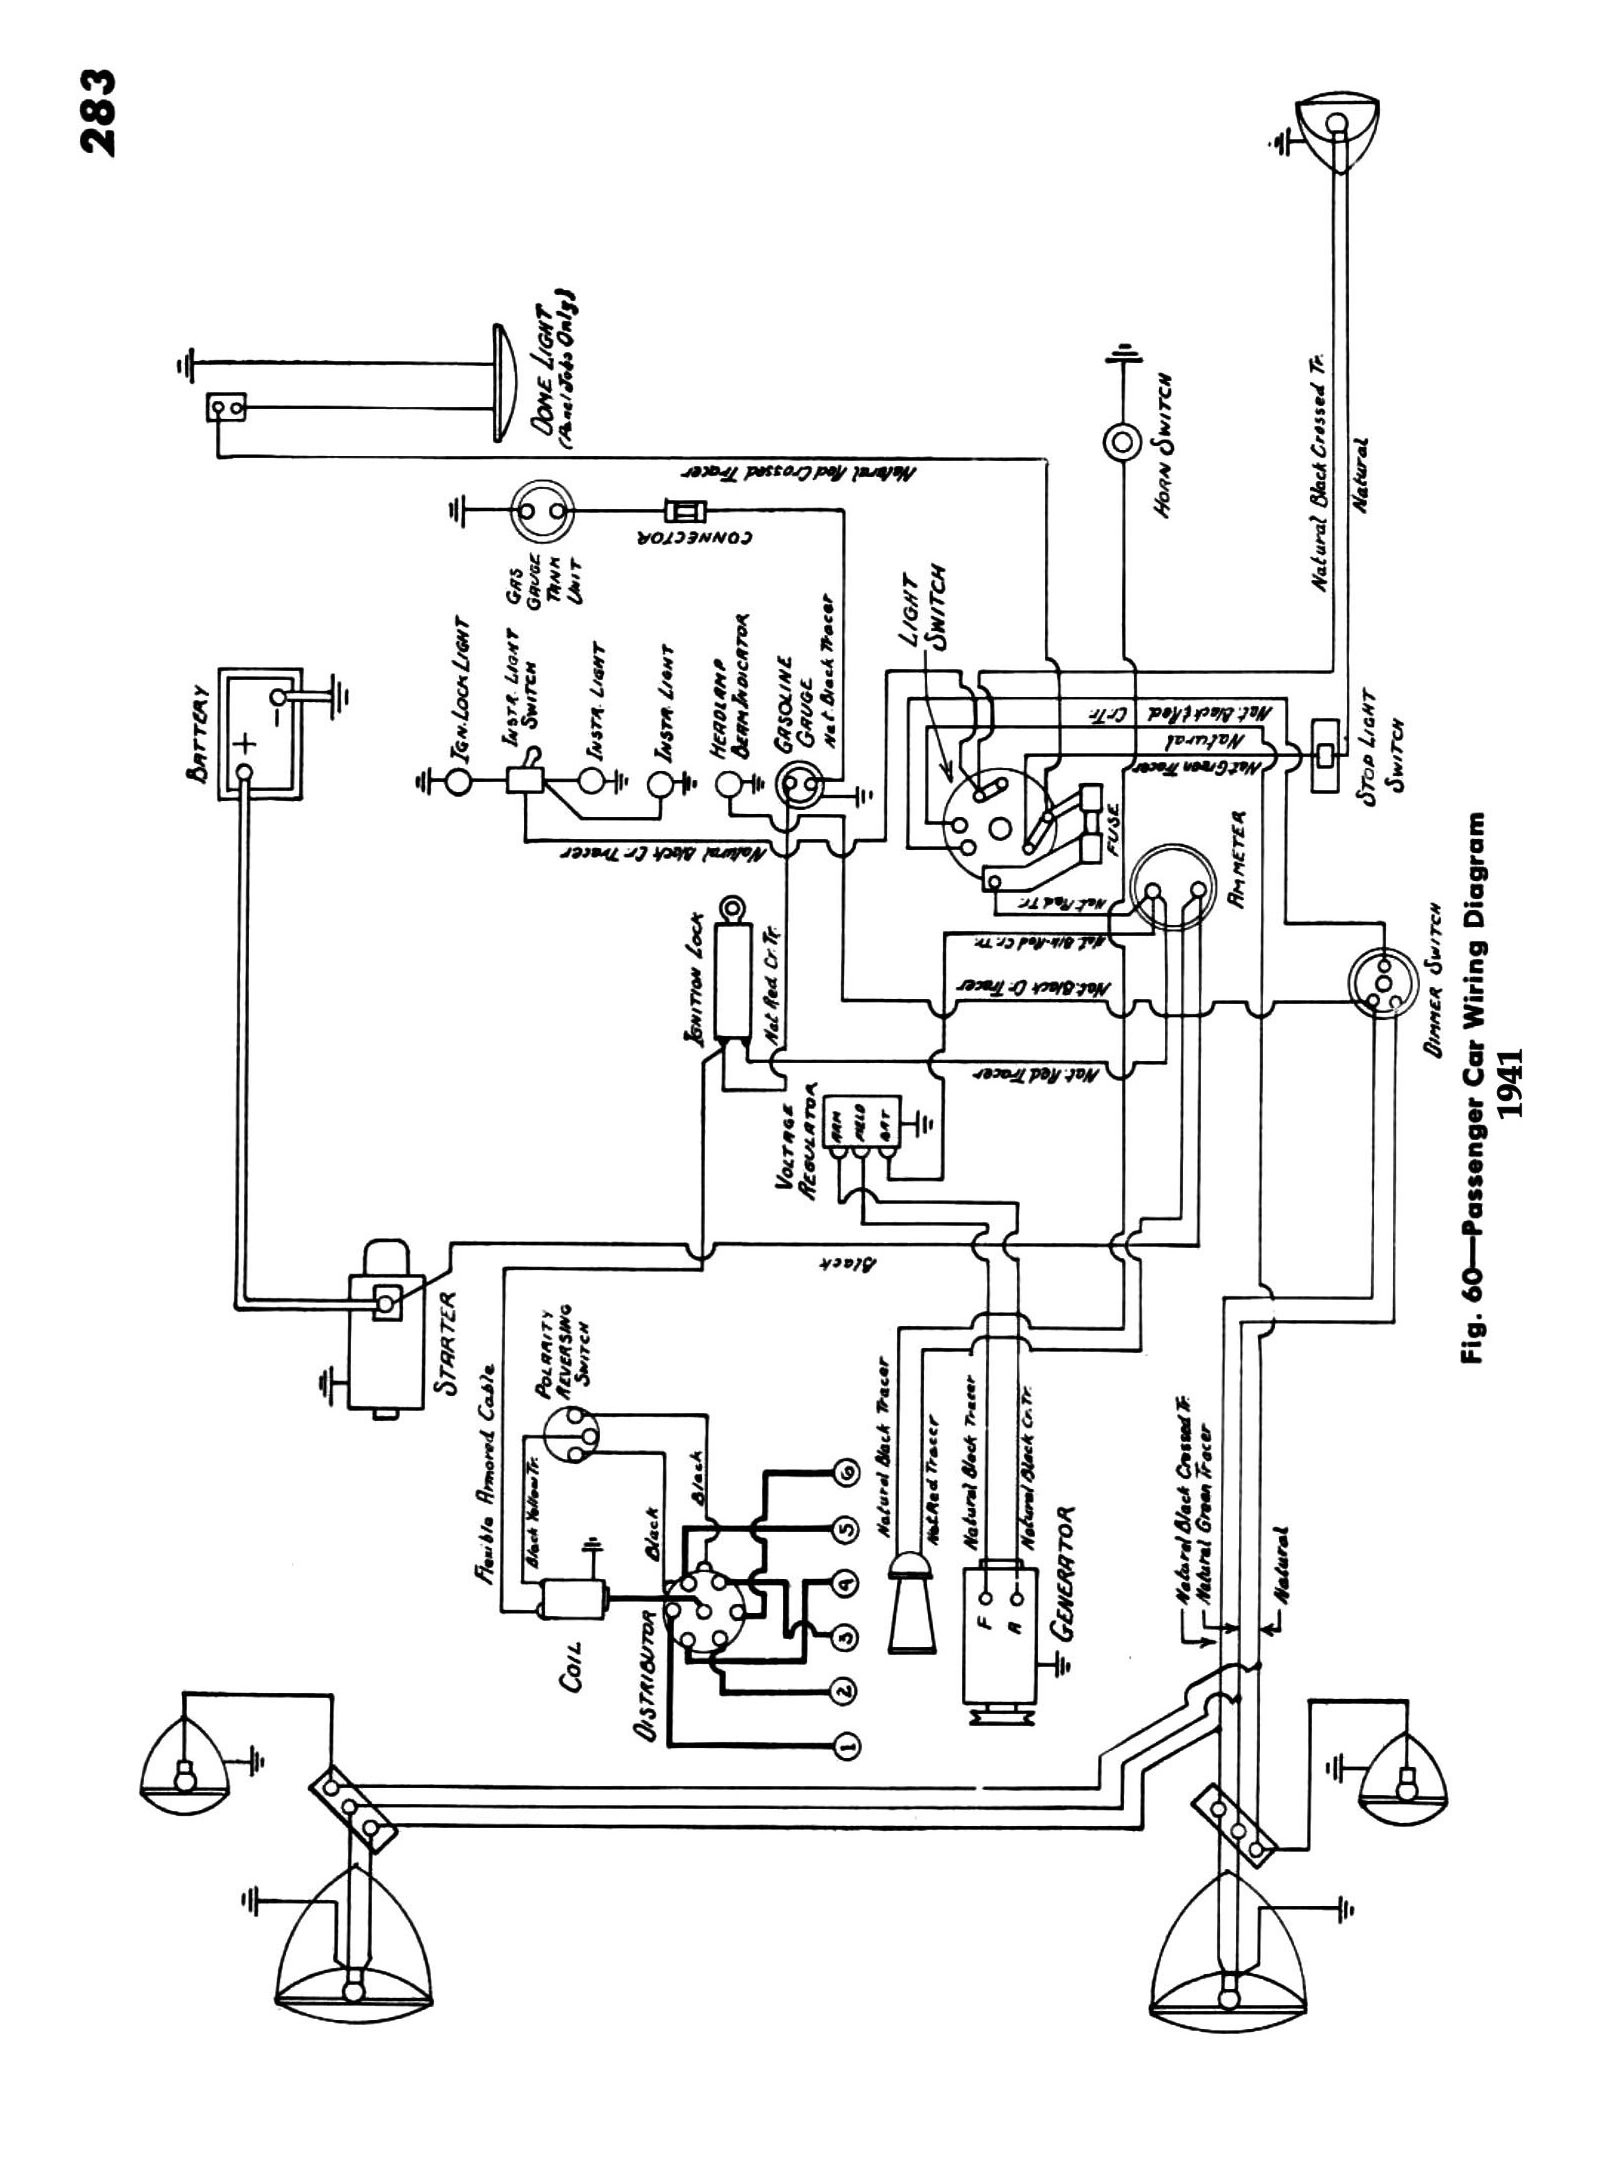 hight resolution of 1941 dodge truck wiring diagram wiring diagrams u2022 2011 dodge wiring diagram 1941 dodge wiring diagram